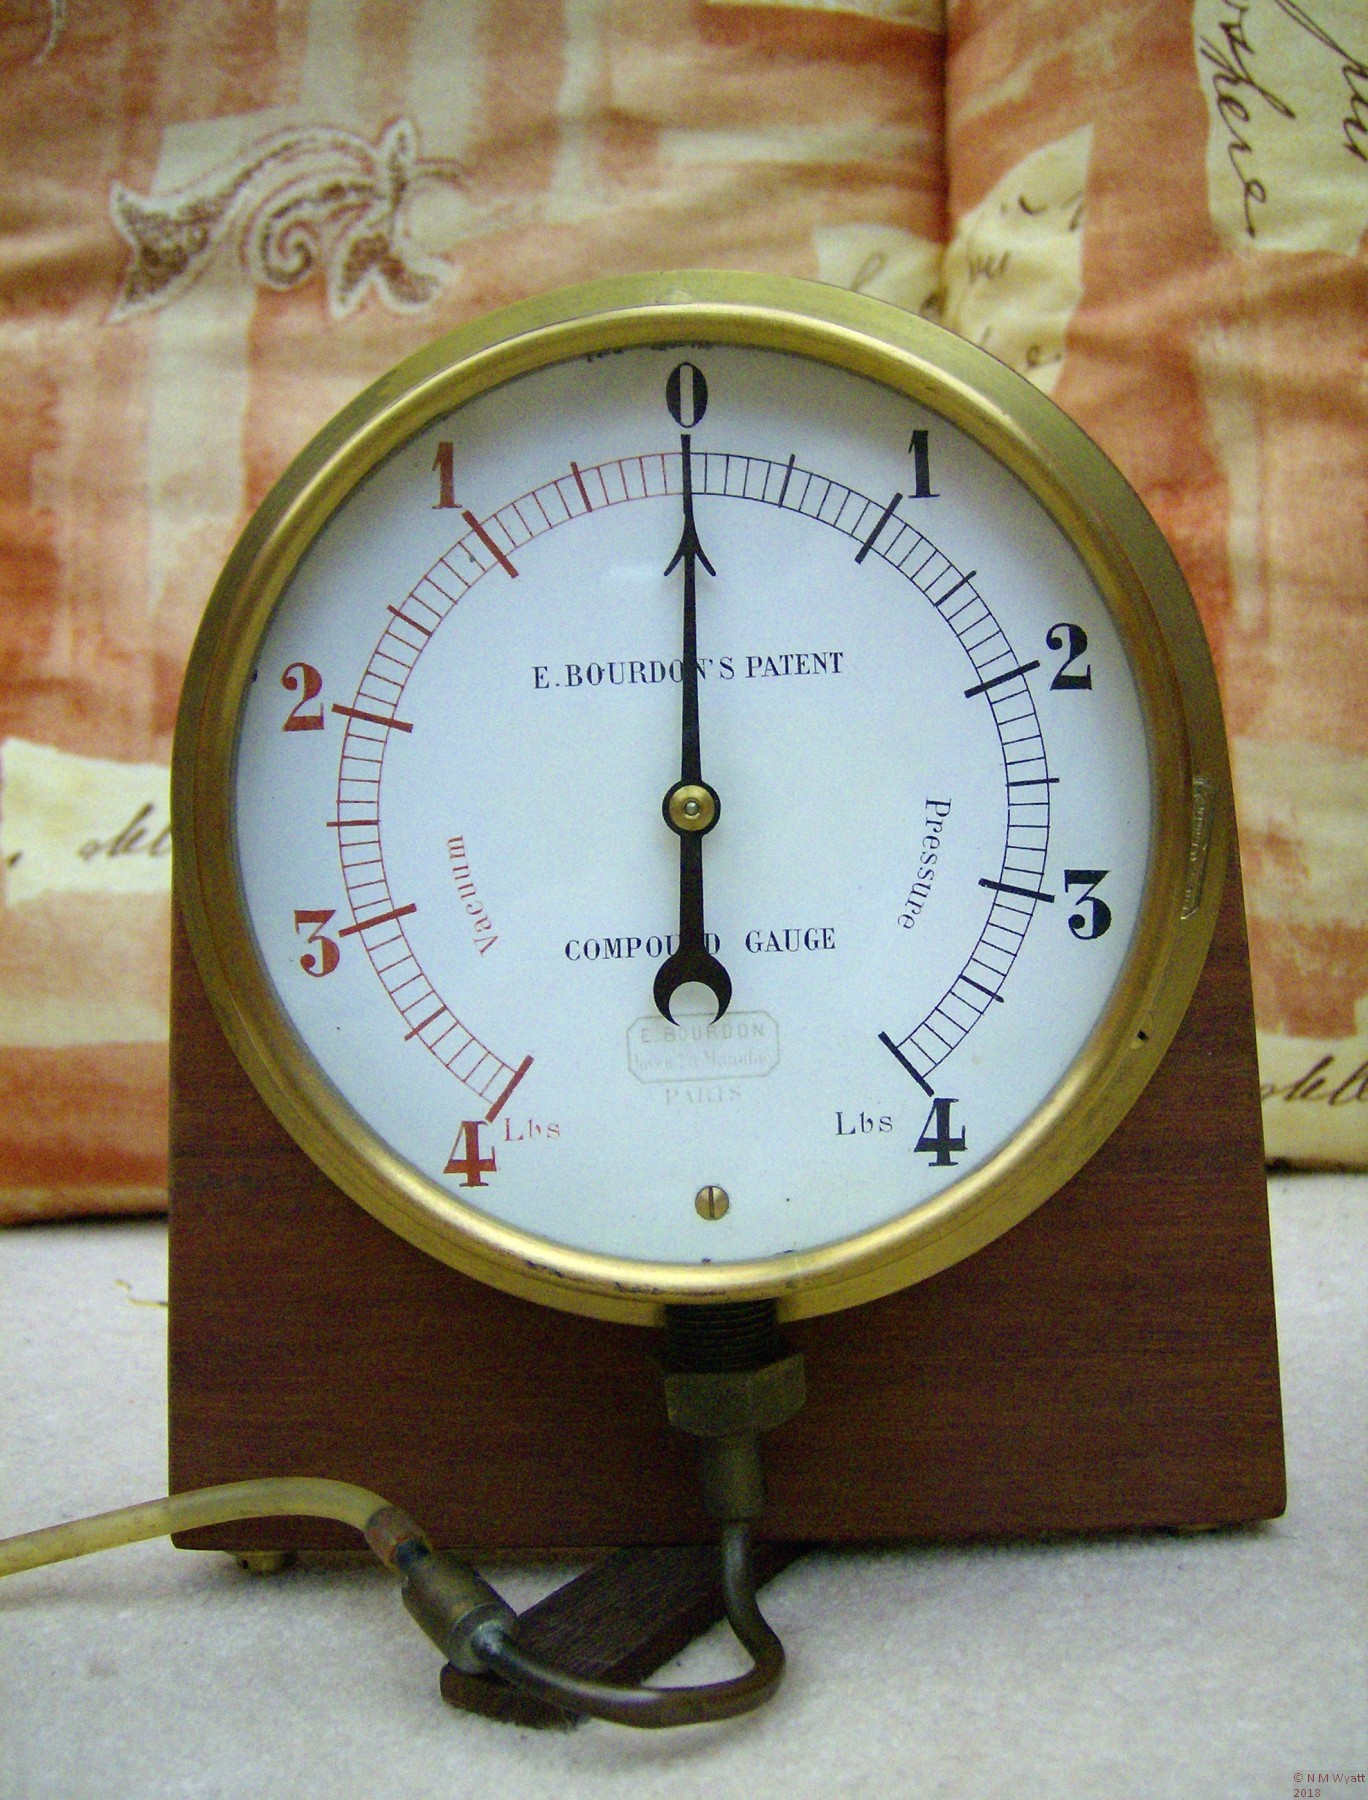 Eugene Bourdon's Patent Compound Gauge